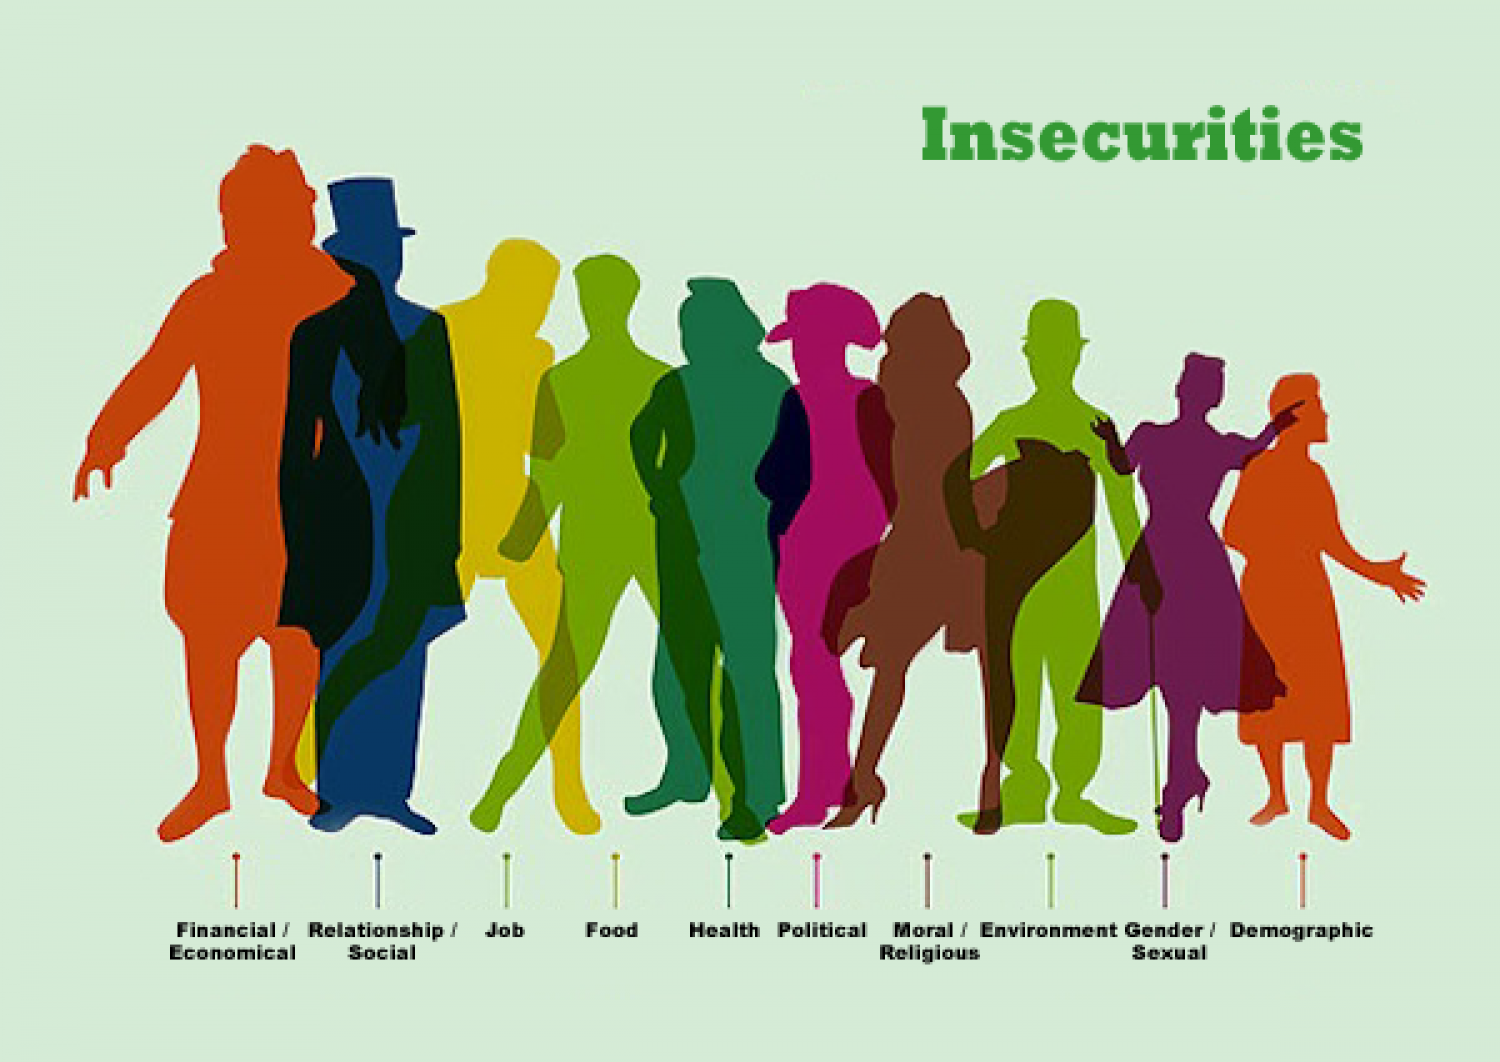 Human Insecurities Infographic